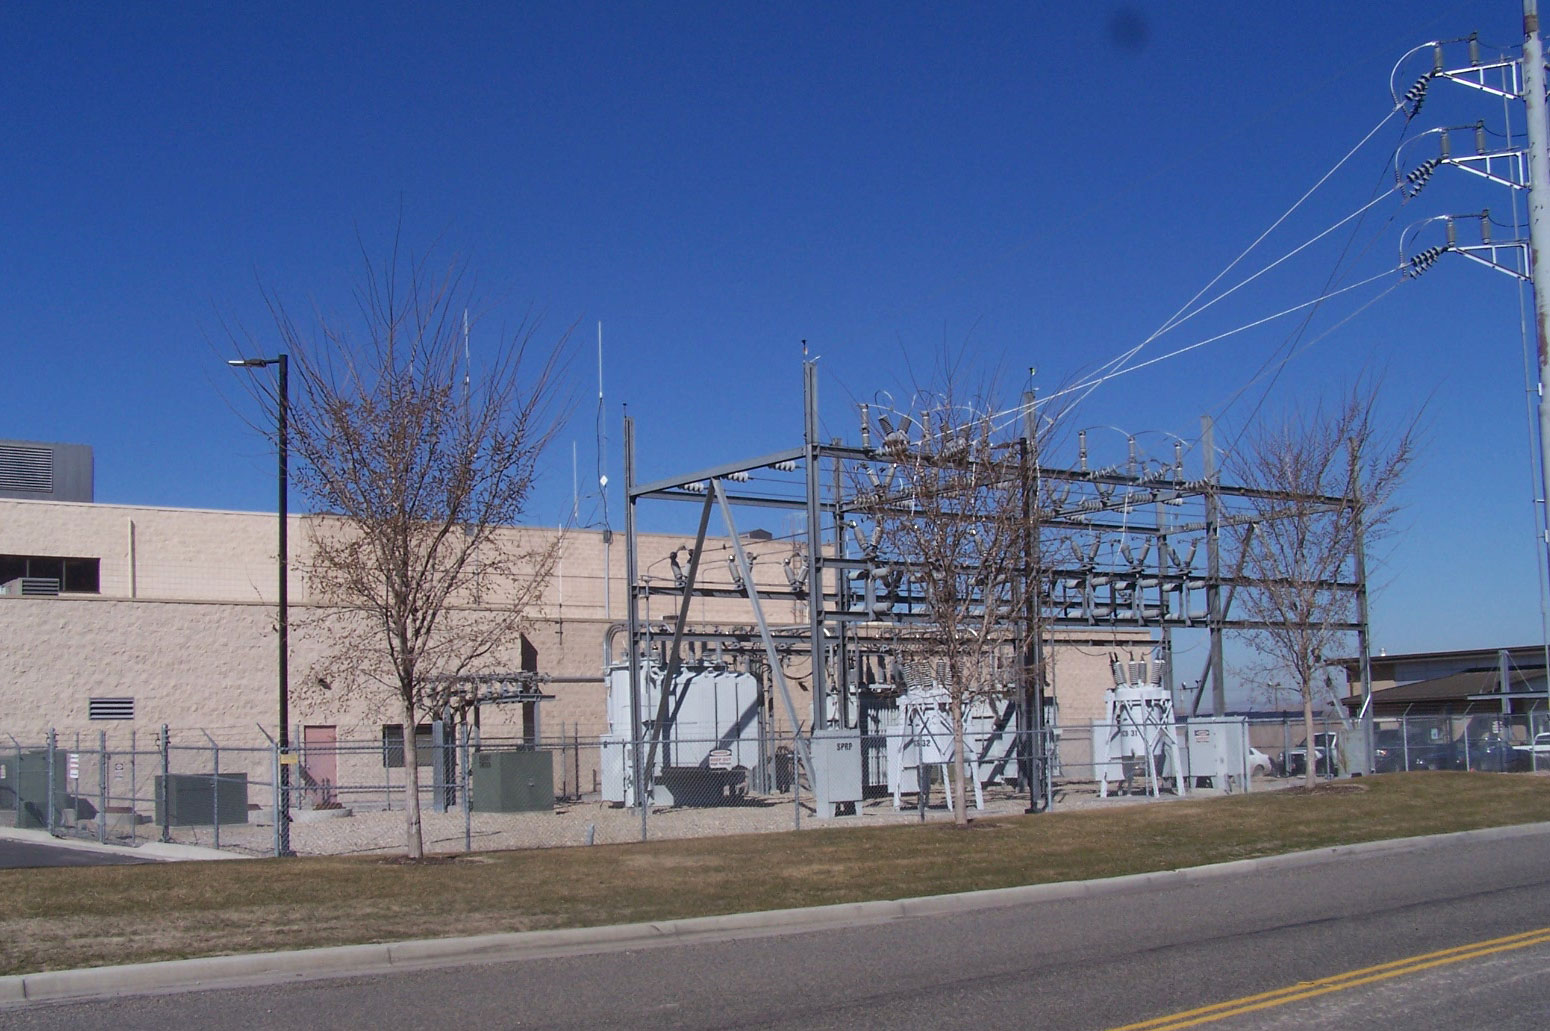 Whitehead Substation